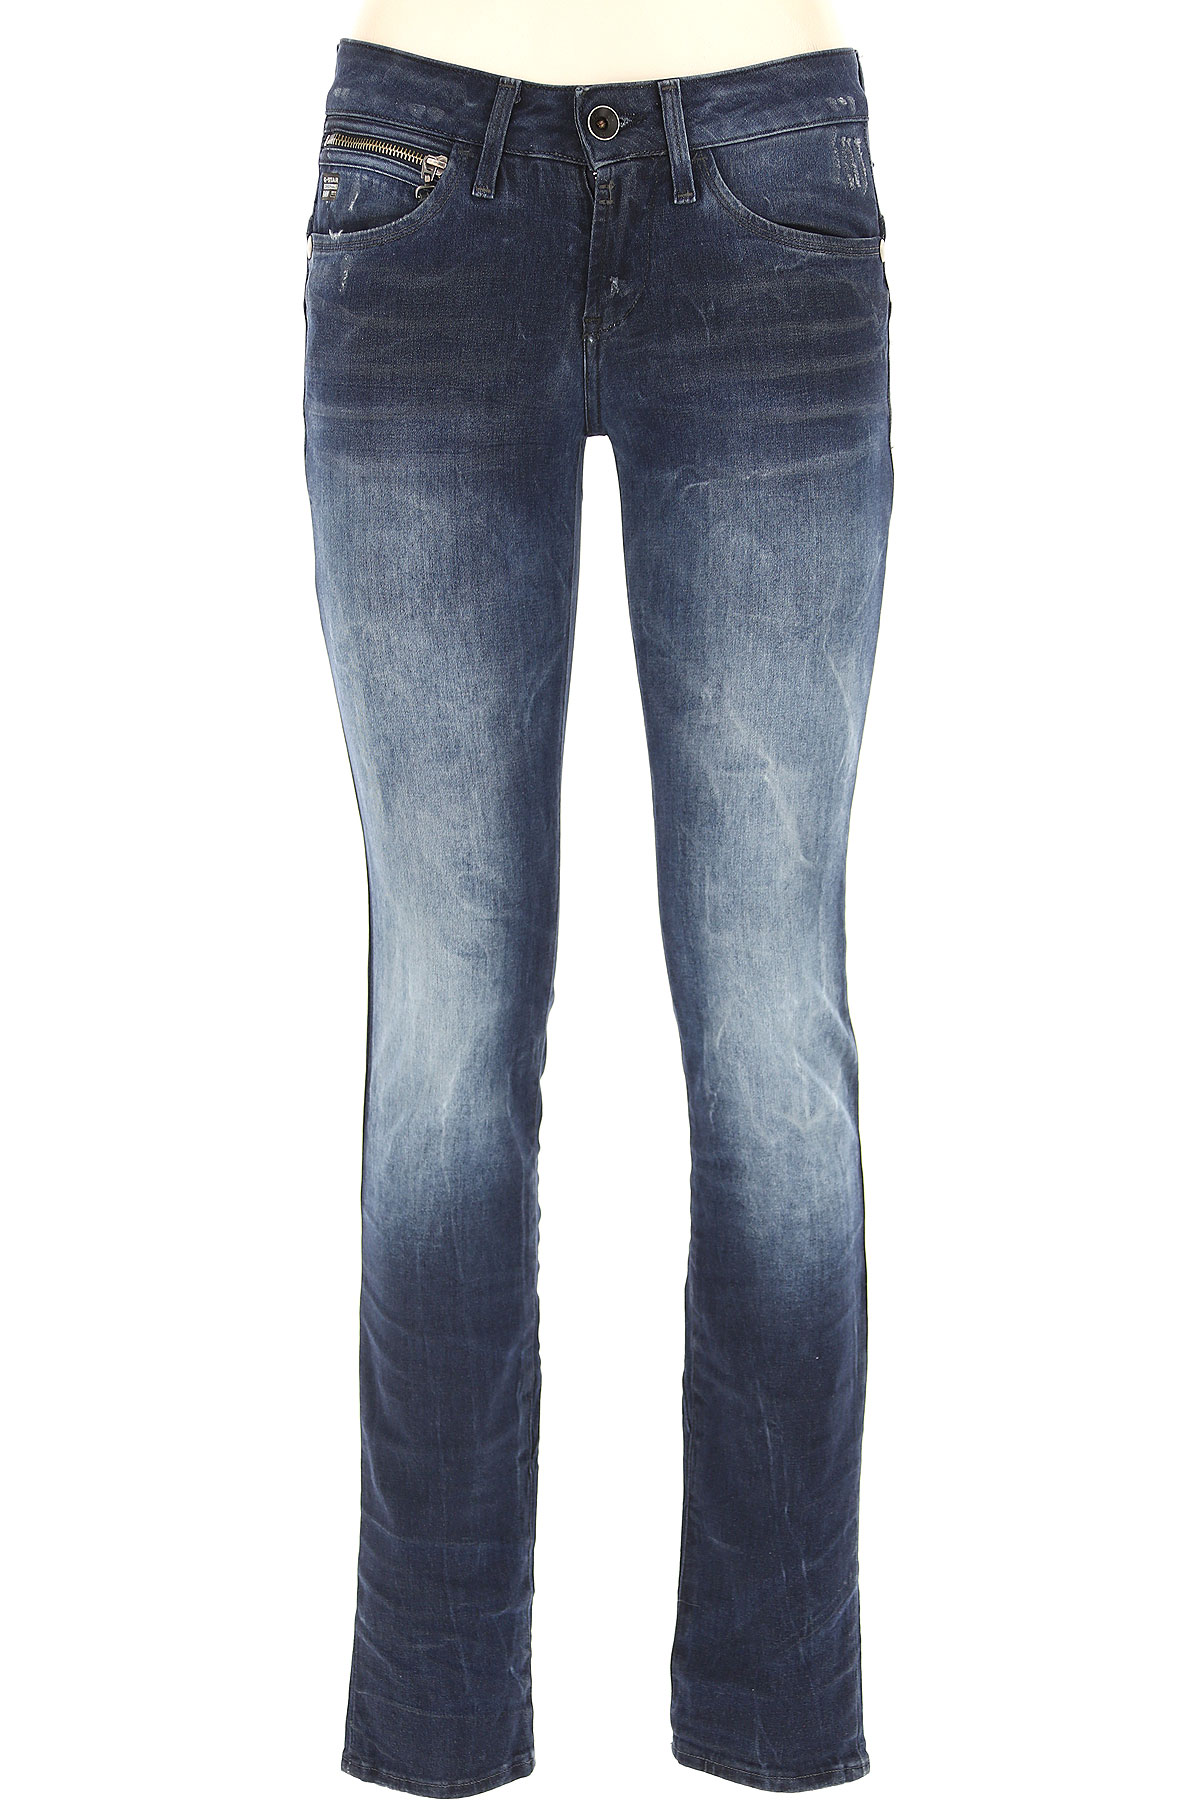 G-Star Jeans On Sale in Outlet, Denim, Cotton, 2017, 26 27 28